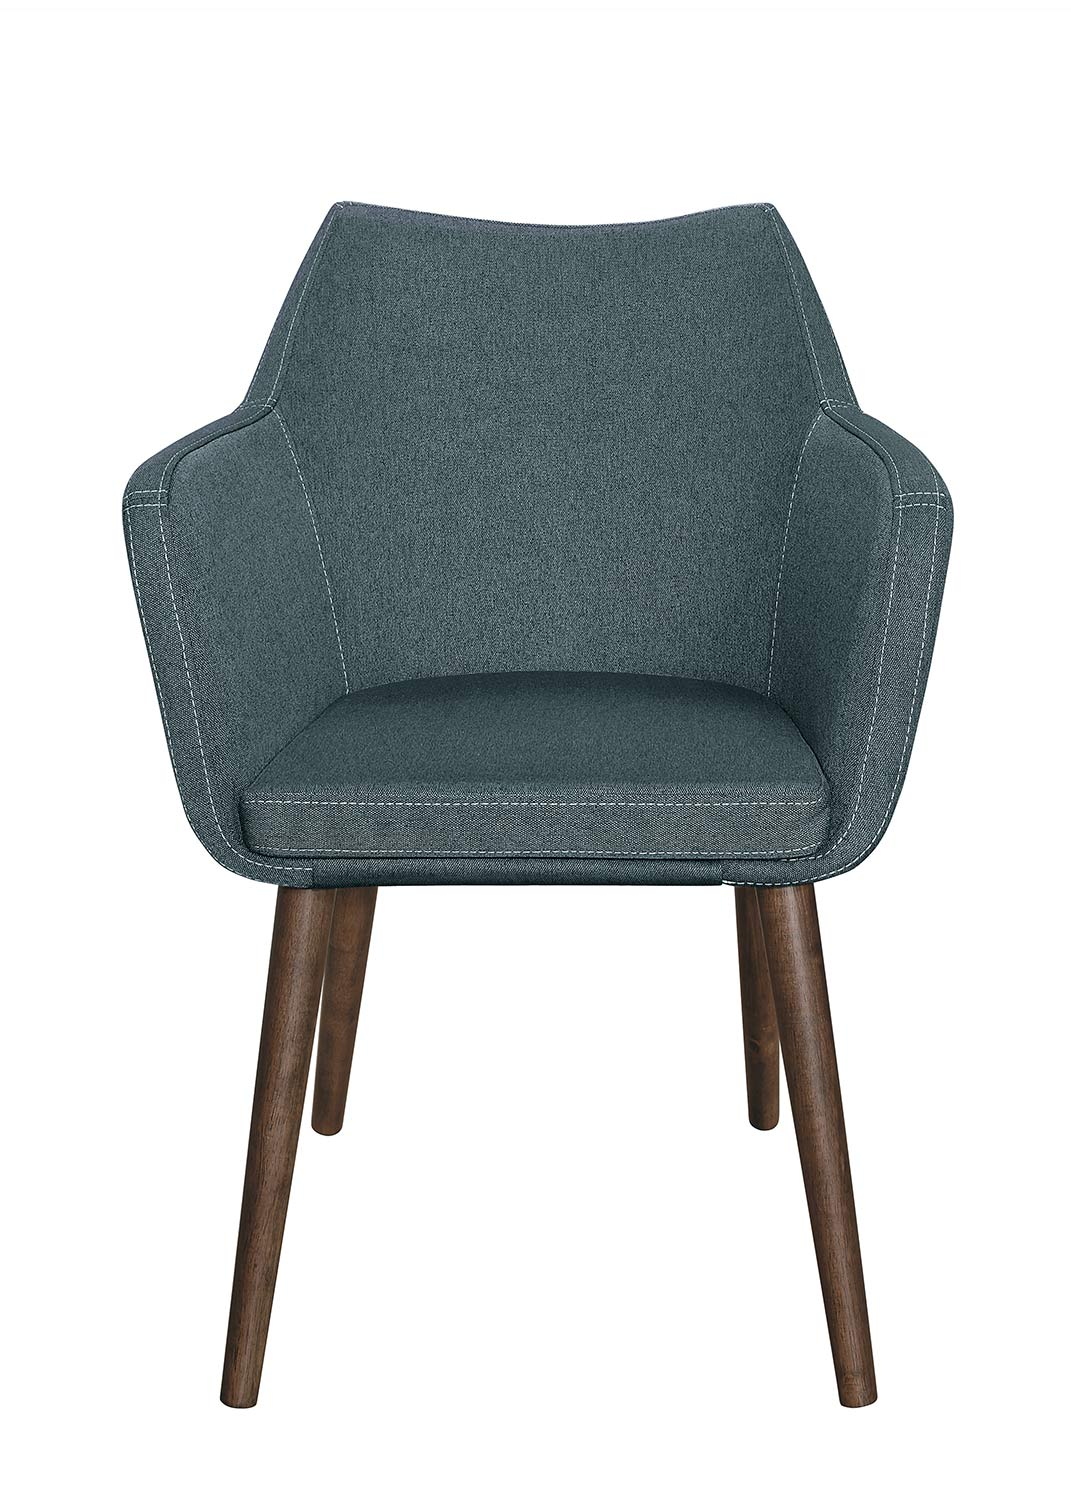 Homelegance Stratus Arm Chair - Dark